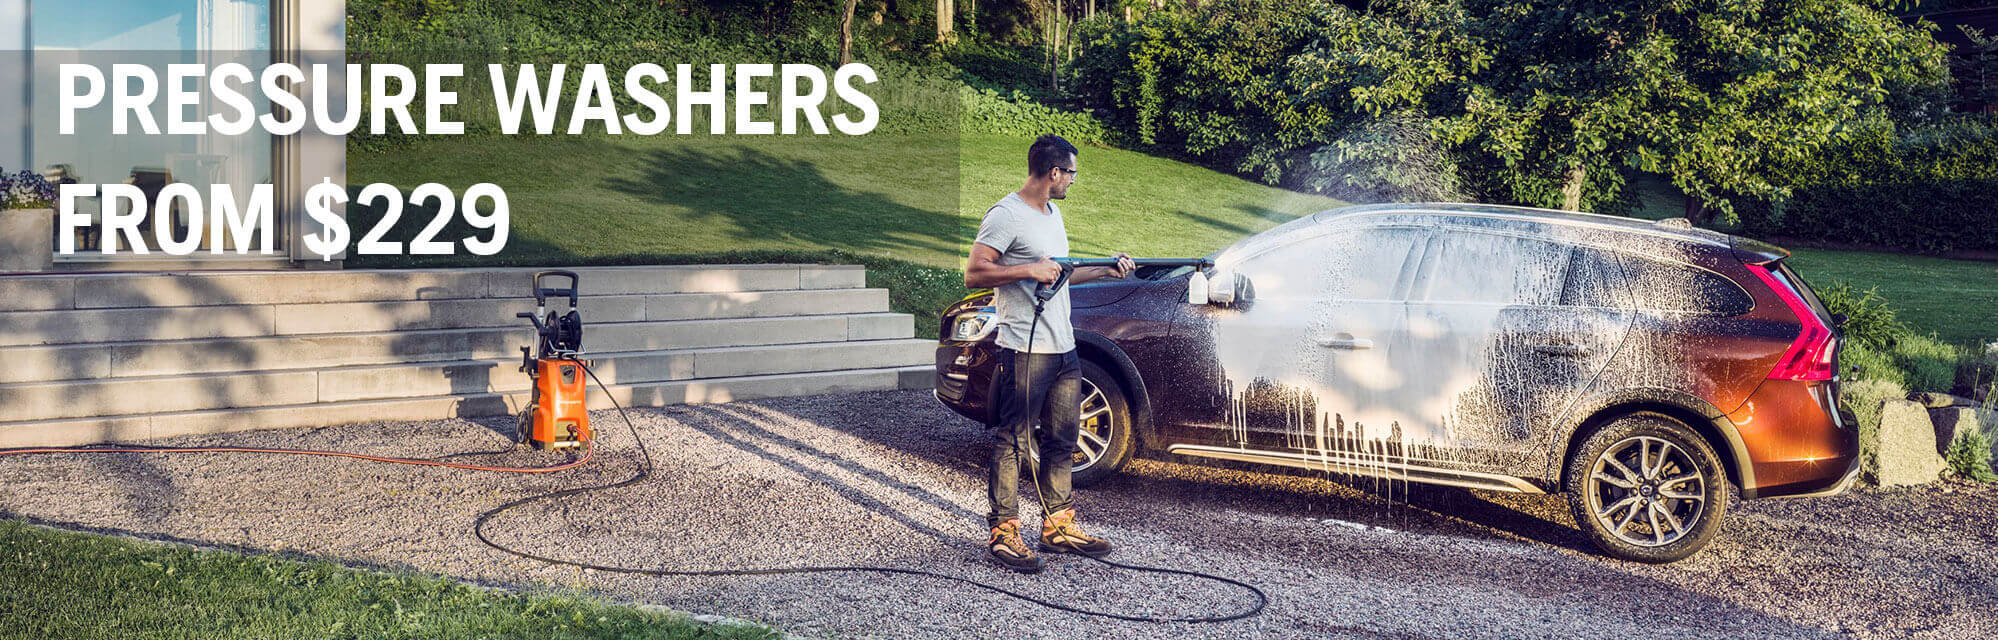 Spring Pressure Washers